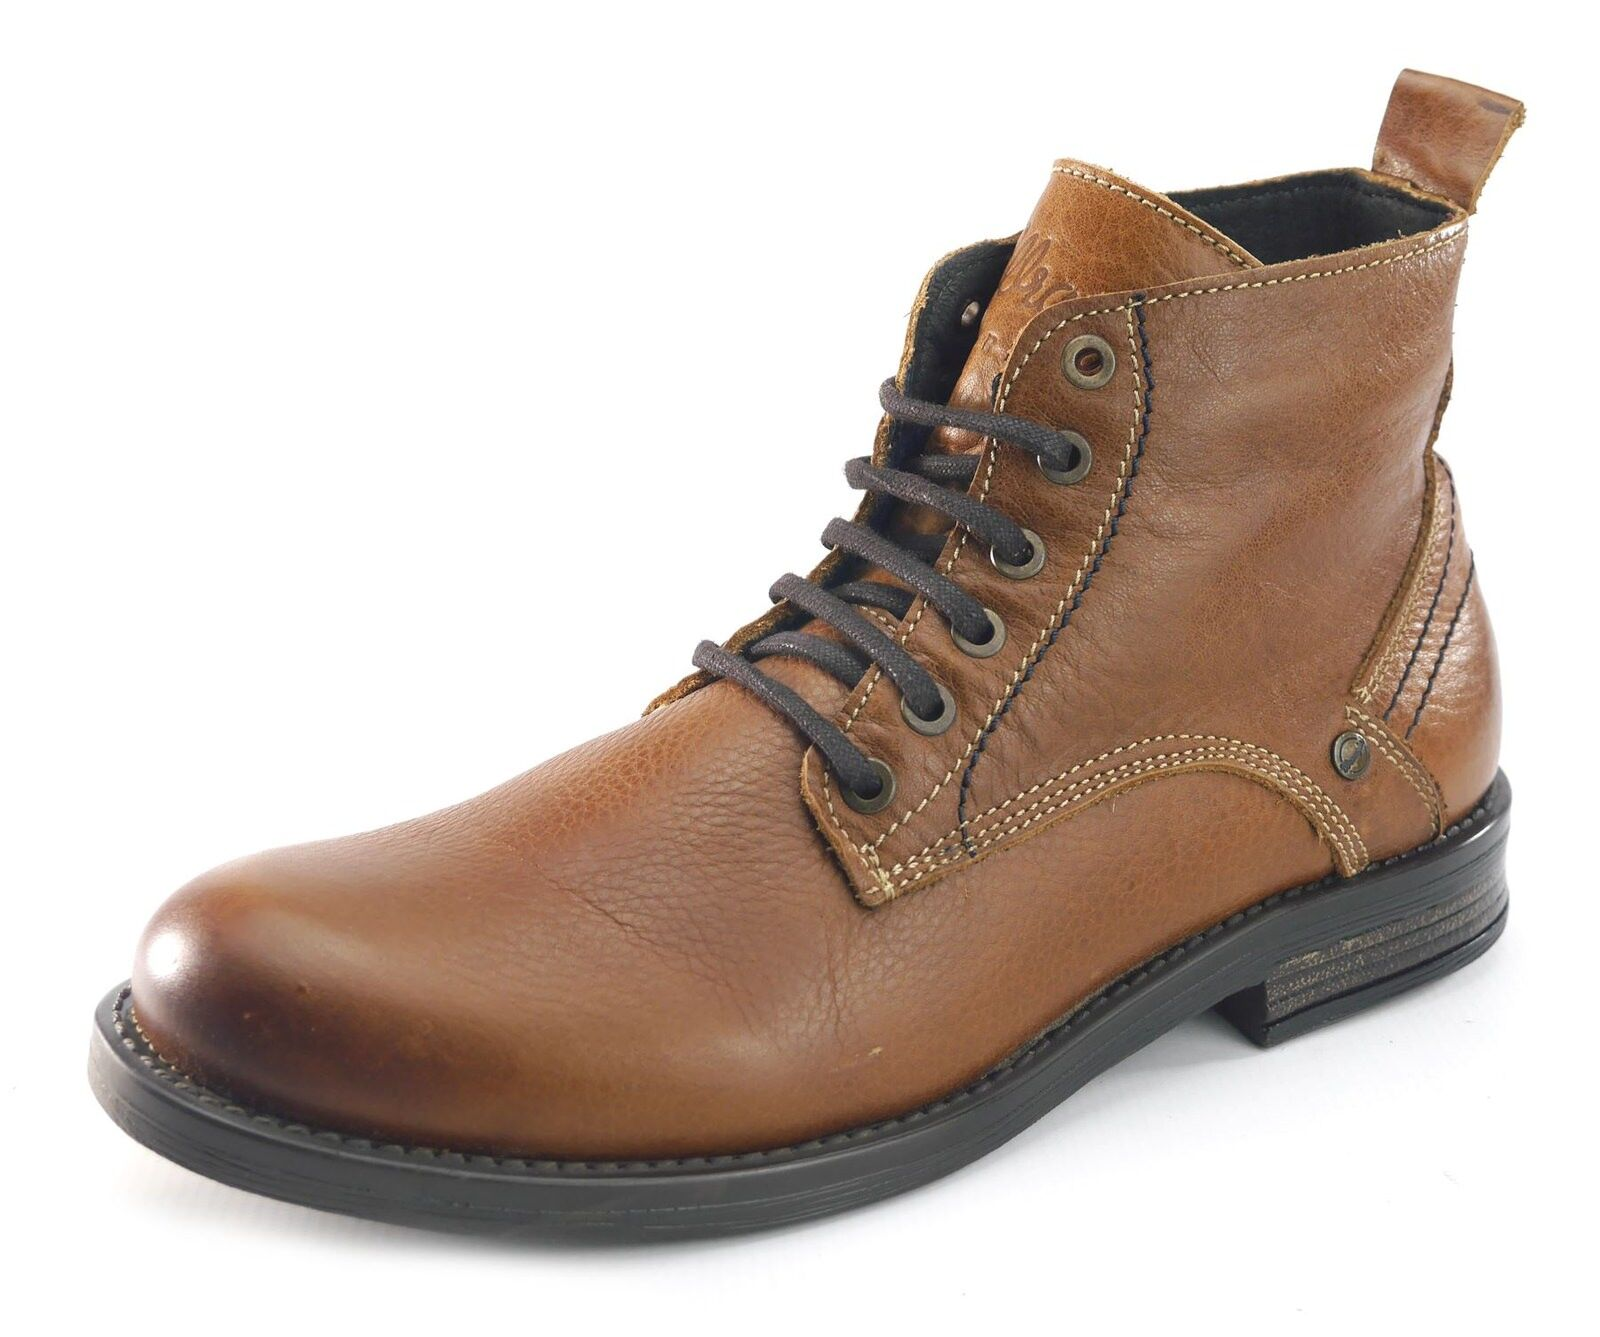 Wrangler Cliff Mid Mid Mid Hombre Lace Leather Ankle botas Tan Marrón e22a4f